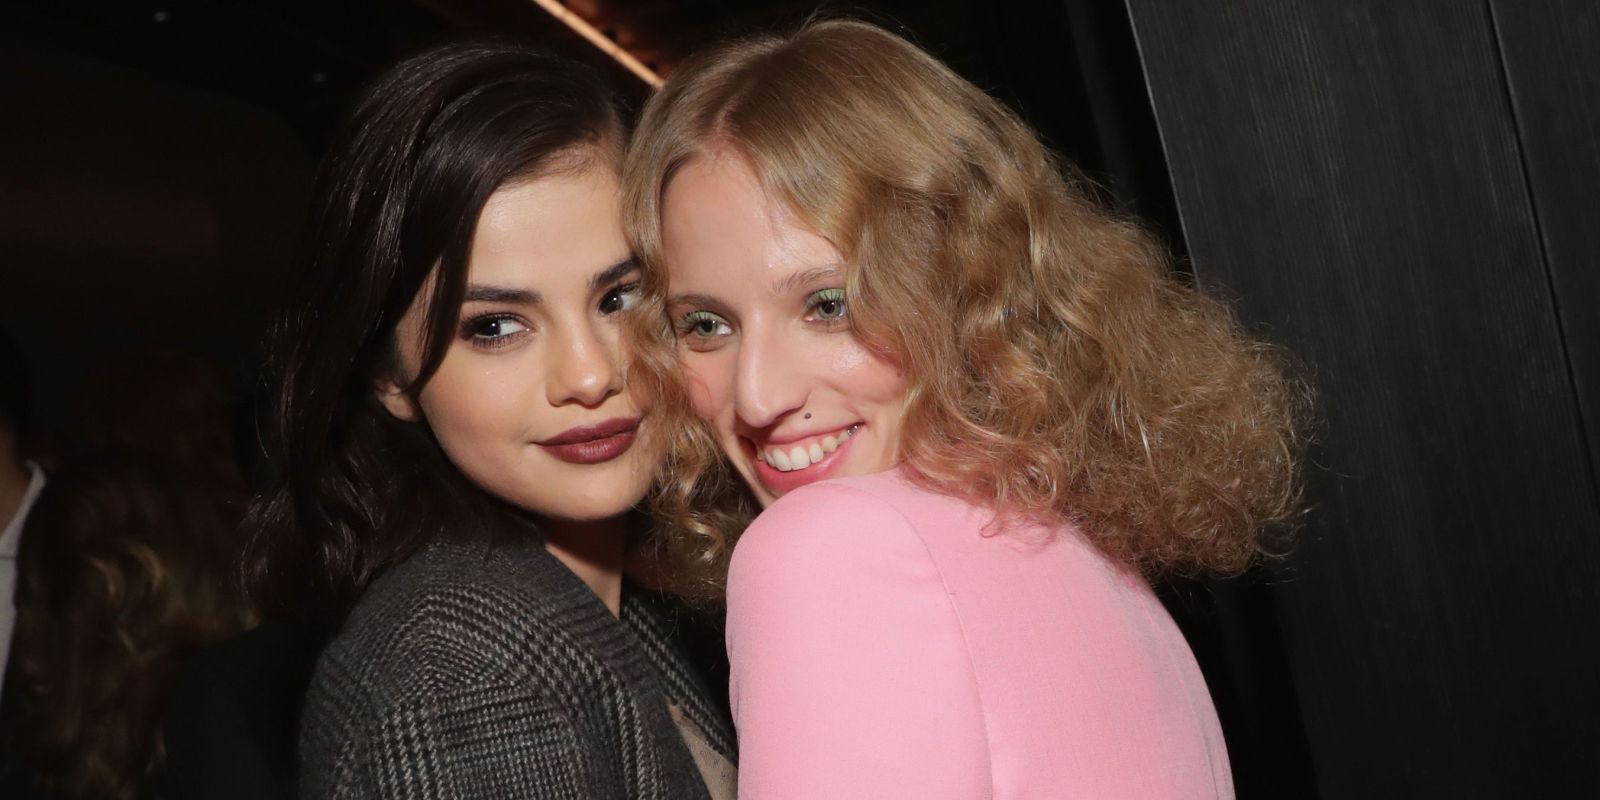 Selena Gomez Just Unfollowed Her BFF And Collaborator Petra Collins After Justin Bieber Split